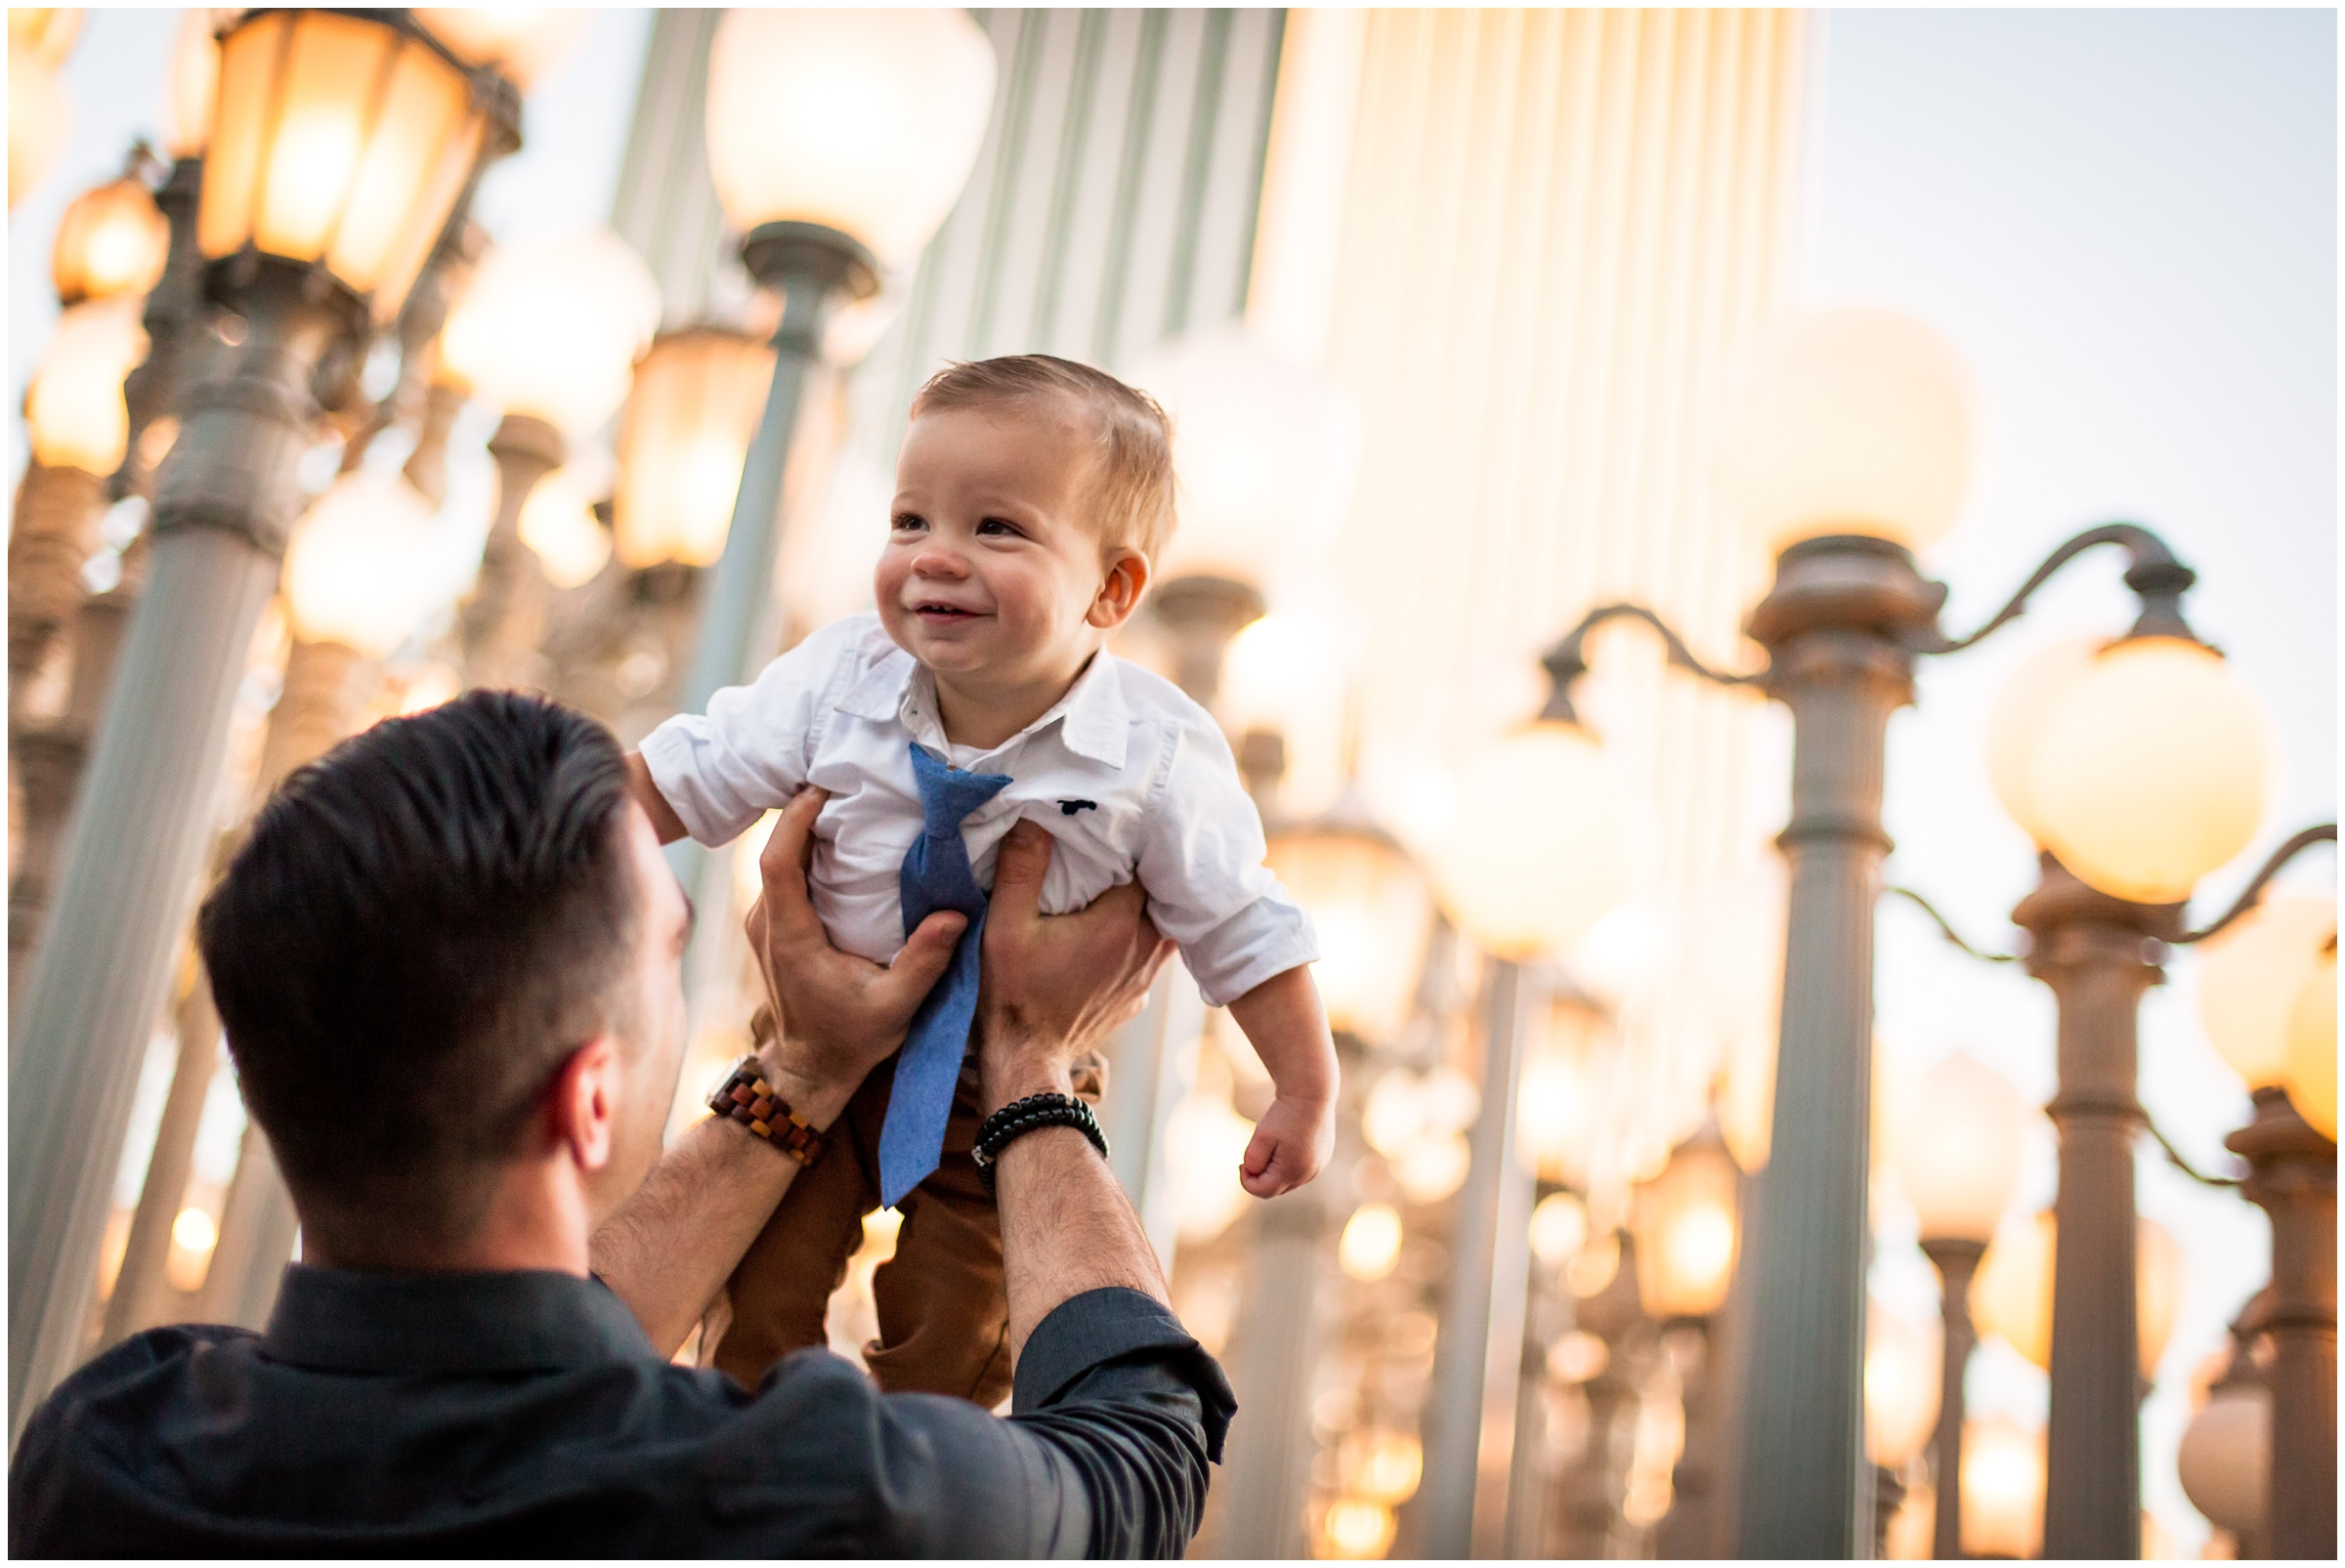 Dad and son at LACMA Lightposts by Just Maggie Photography - Los Angeles Family Photographer